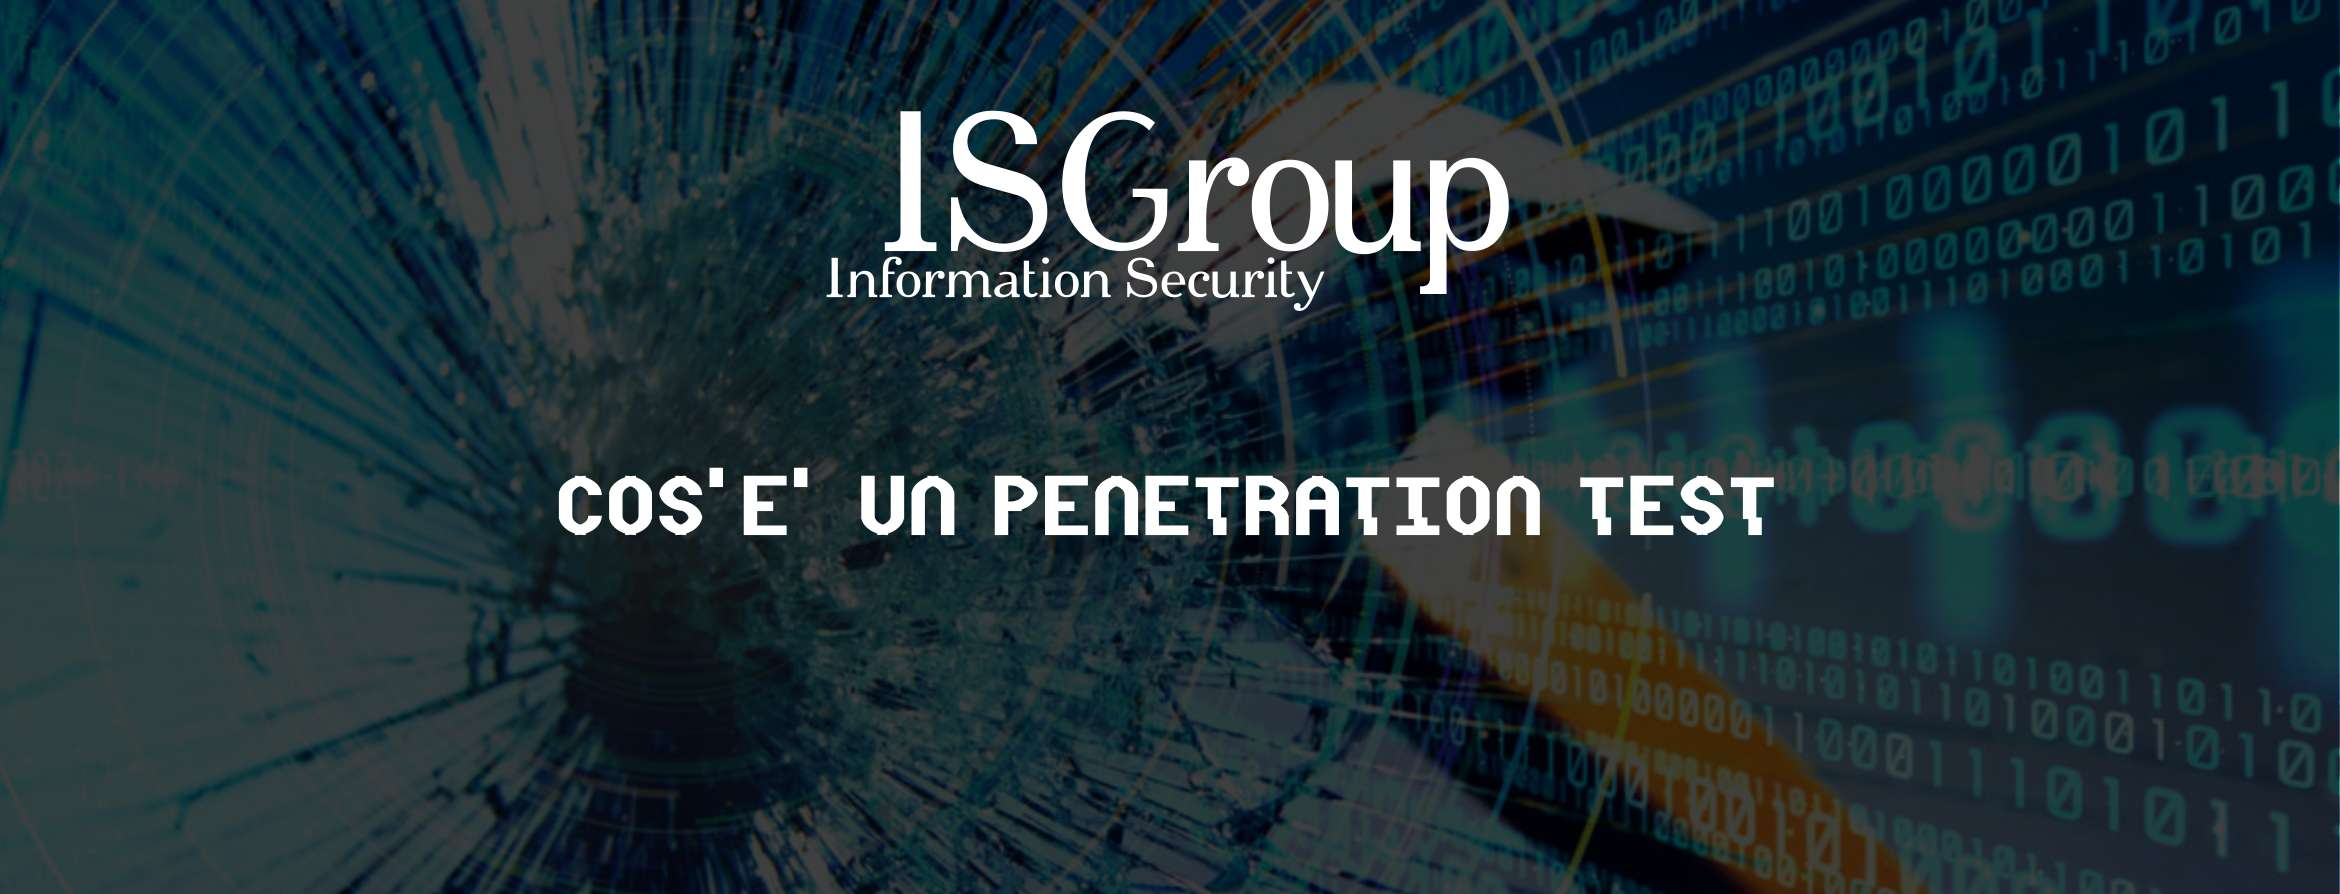 Cos'è un Penetration Test